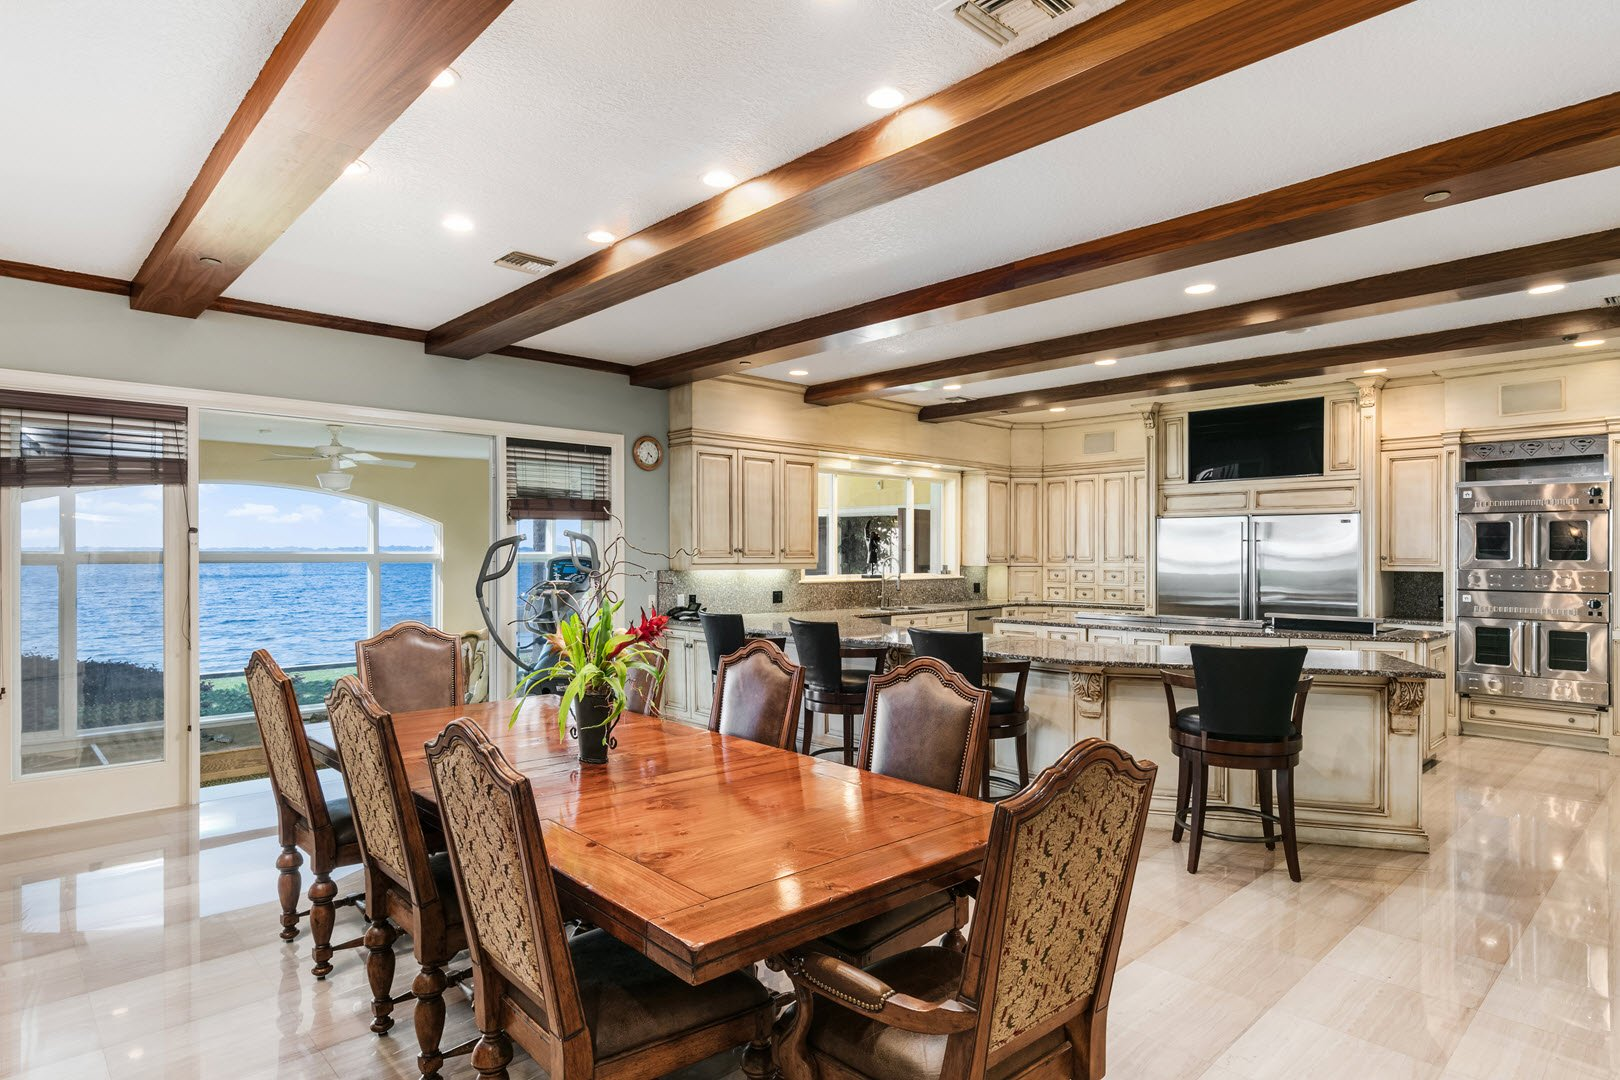 Shaquille O'Neal Florida Mansion For Sale Kitchen and Dining